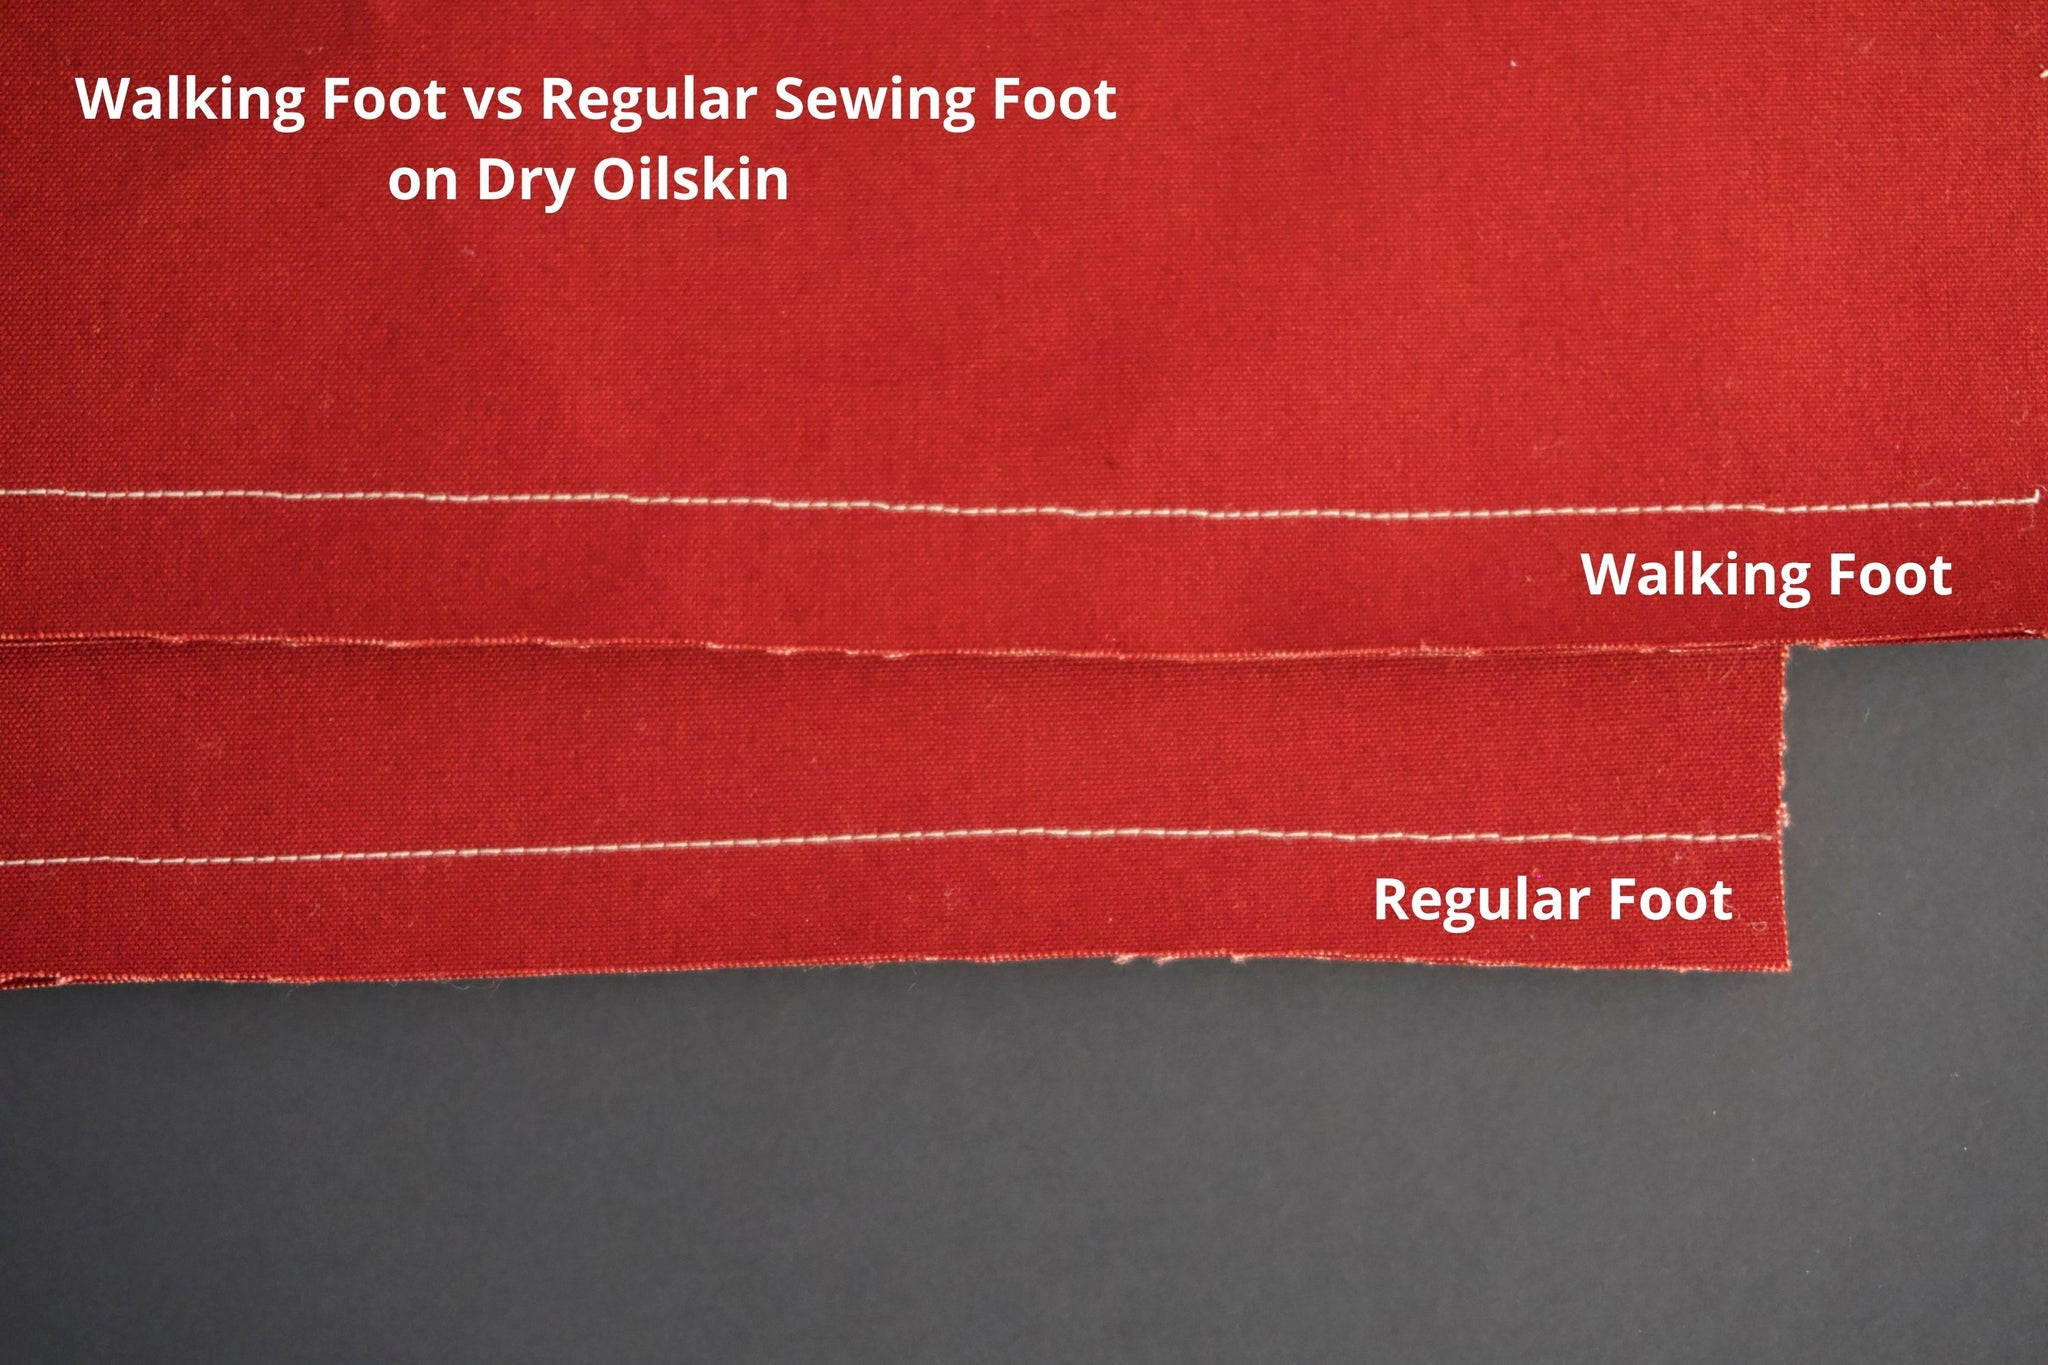 a picture of two pieces of dry oilskin showing white stitching on them. the top one is a walking foot and the bottom one is a regular foot. the stitches on both are even and neat